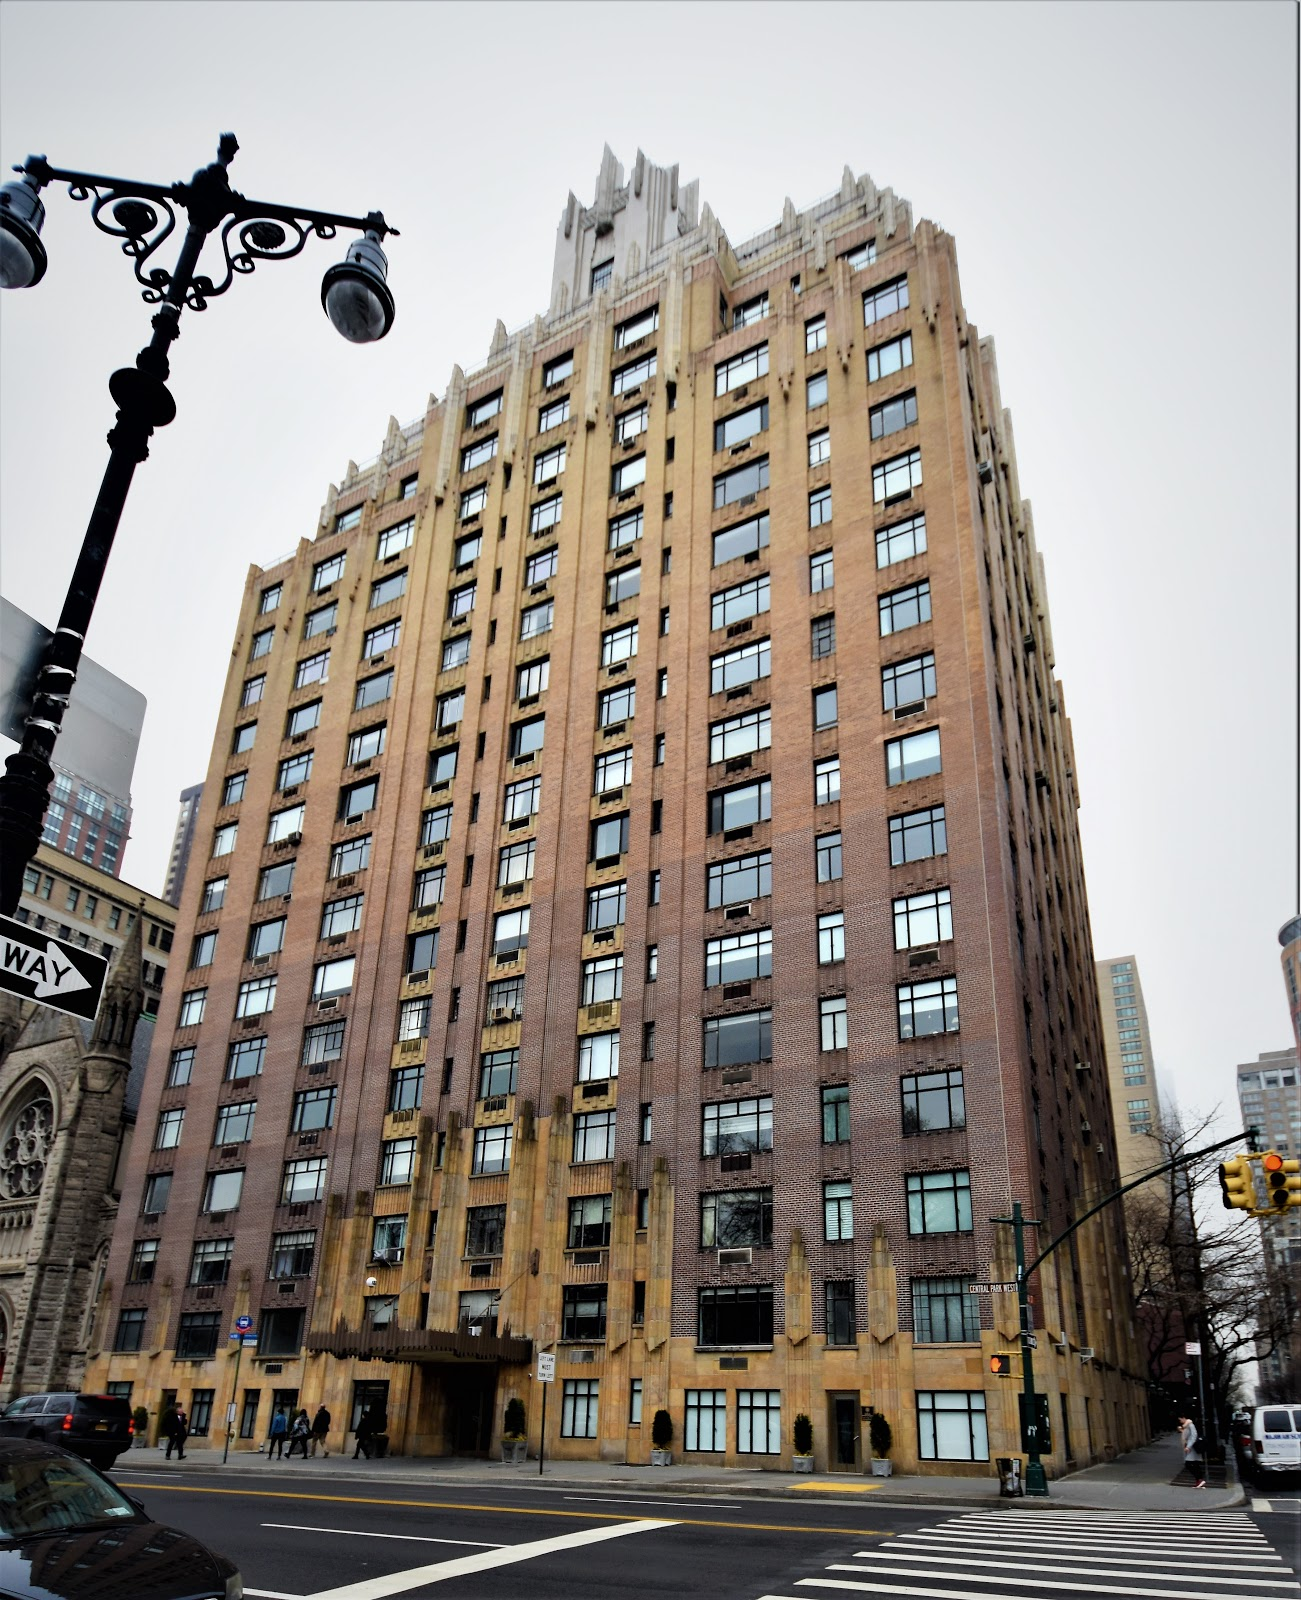 Central Park Apartments New York: Daytonian In Manhattan: From Rudy Vallee To Ghostbusters